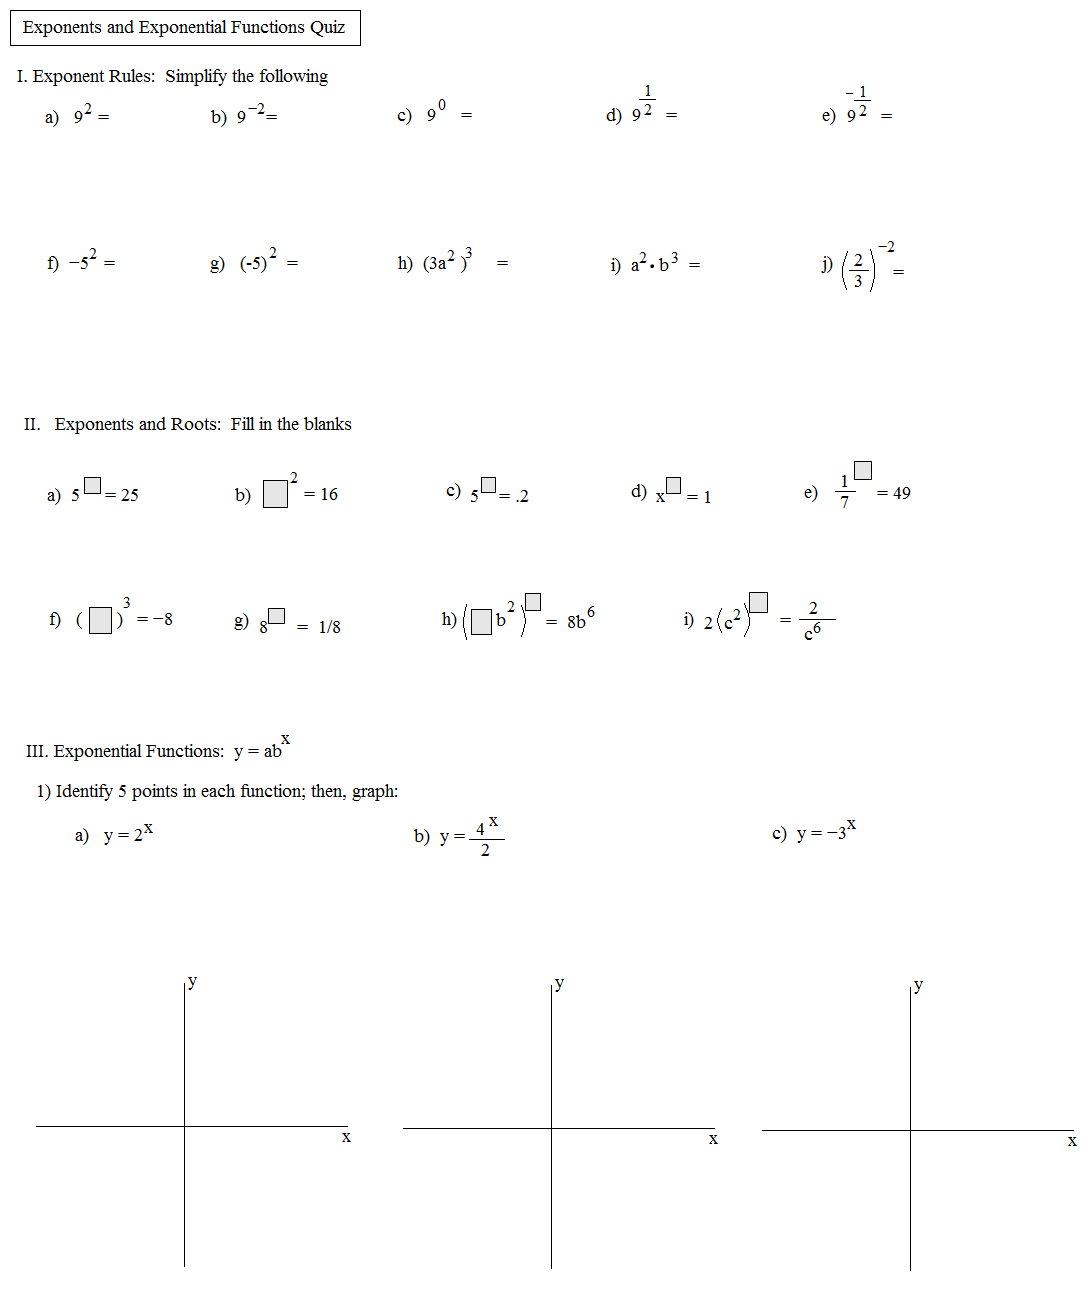 Worksheet Exponential Functions Worksheet Answers